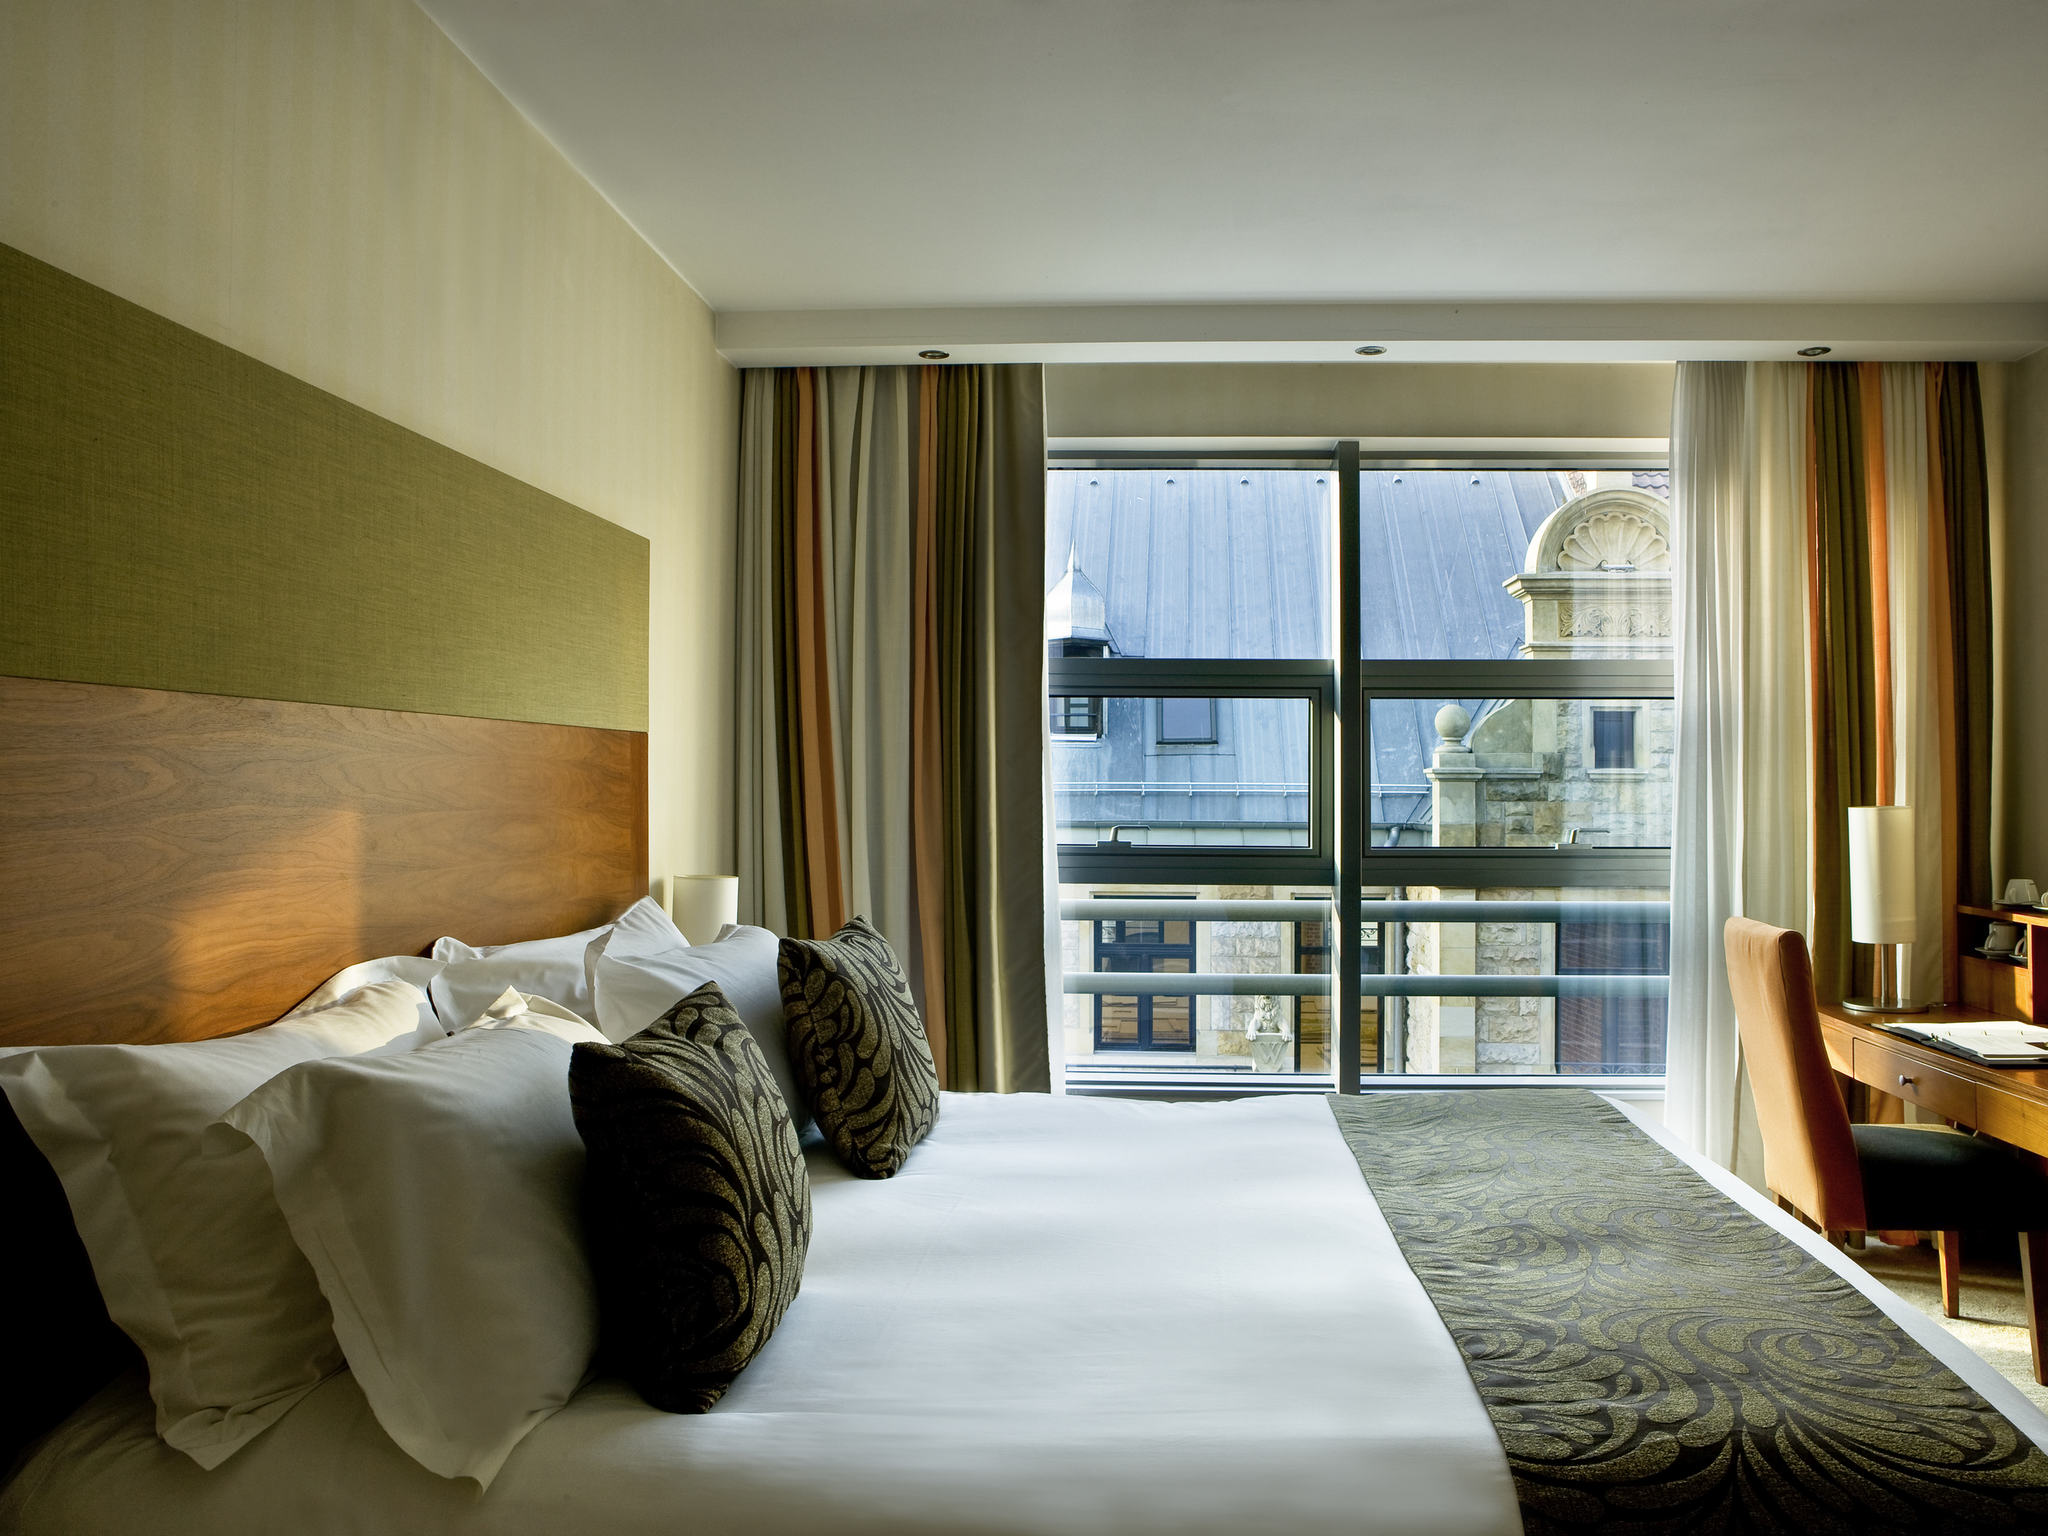 Hotell – Sofitel Wroclaw Old Town